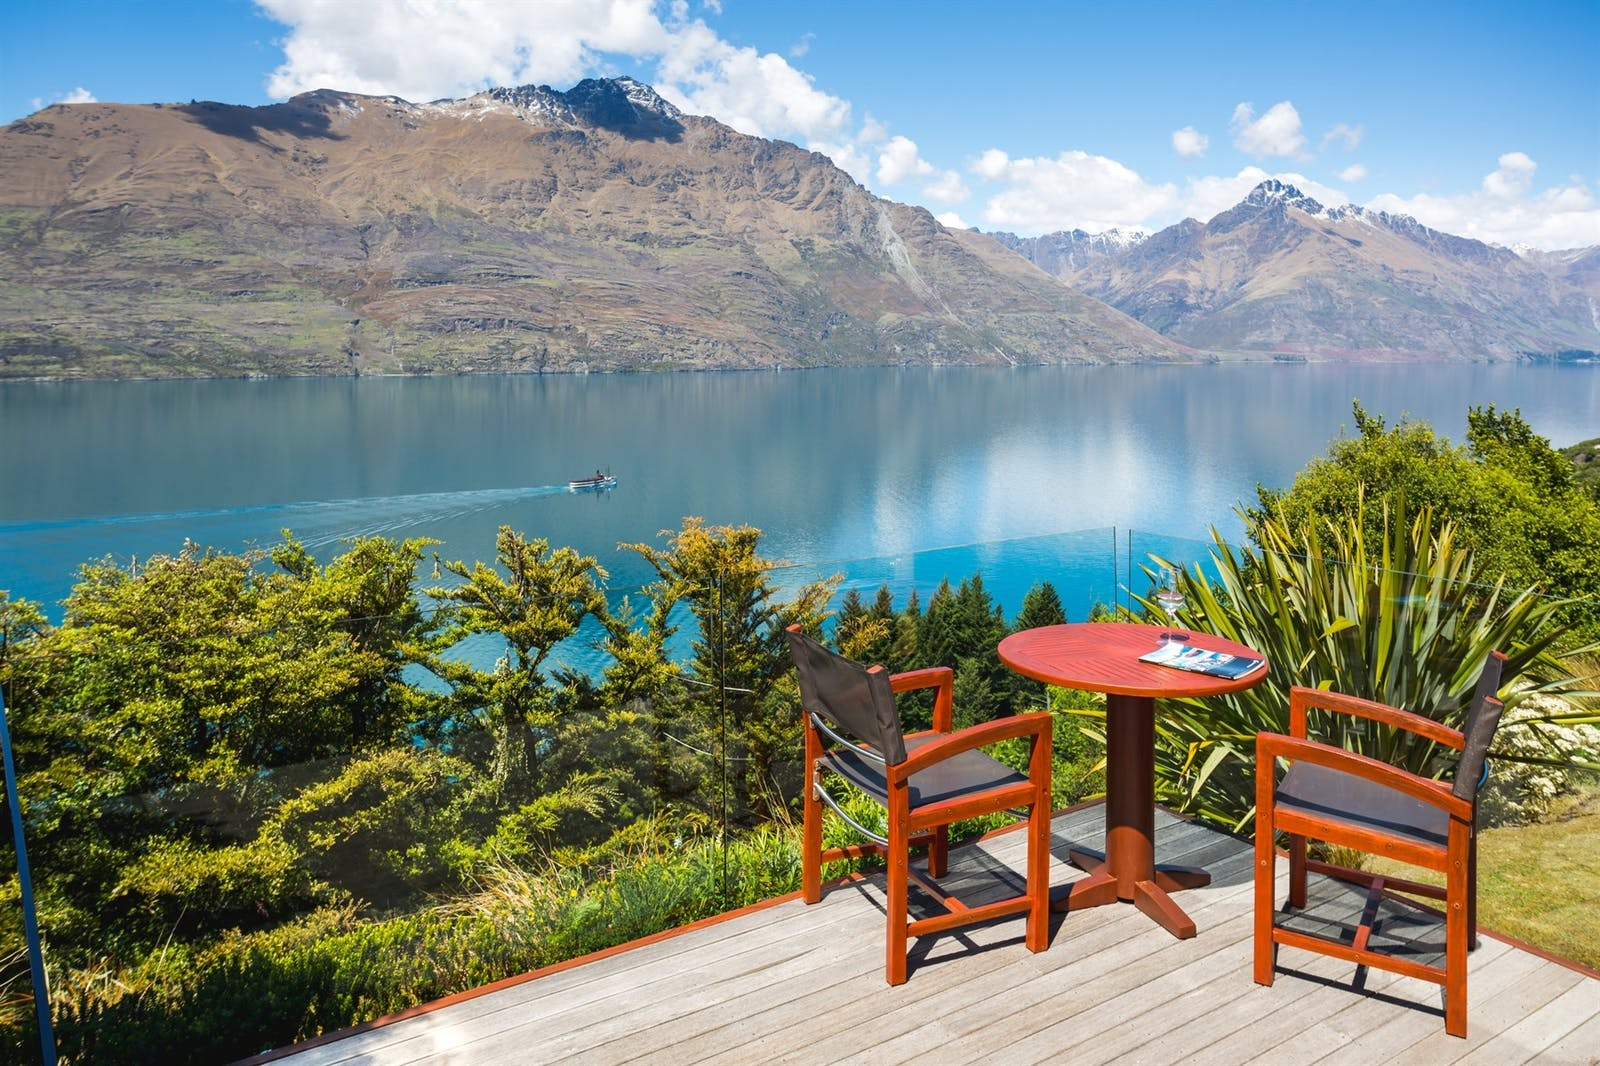 views at azur lodge, Queenstown, South Island, New Zealand